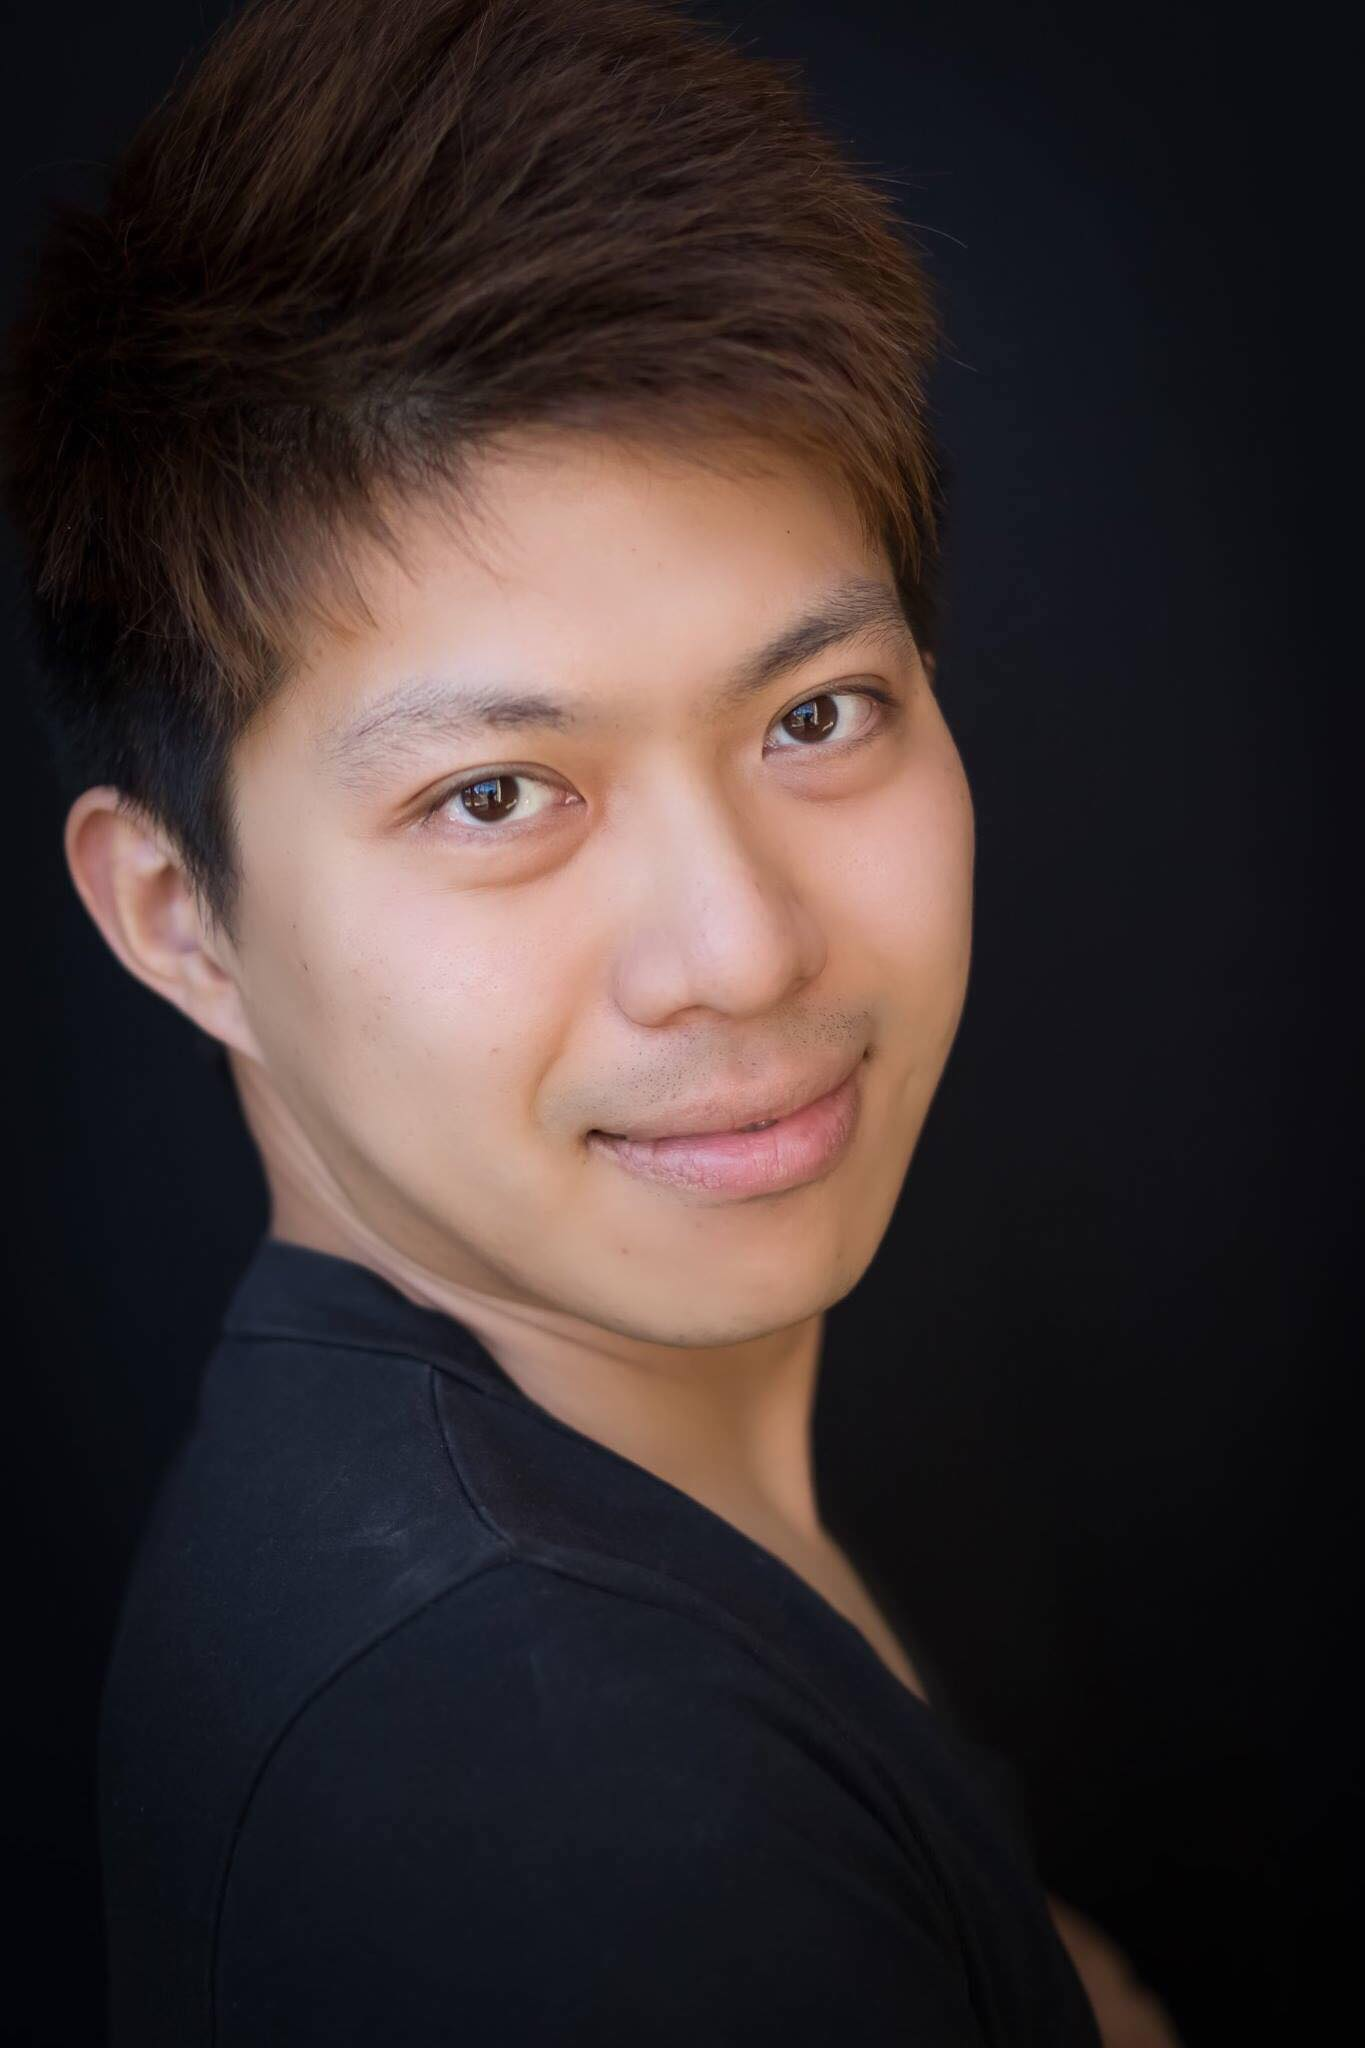 Countertenor: Yichen Li  Faculty at University of Illinois Springfield, Illinois College. Check out his website at  http://www.yichenli.com/